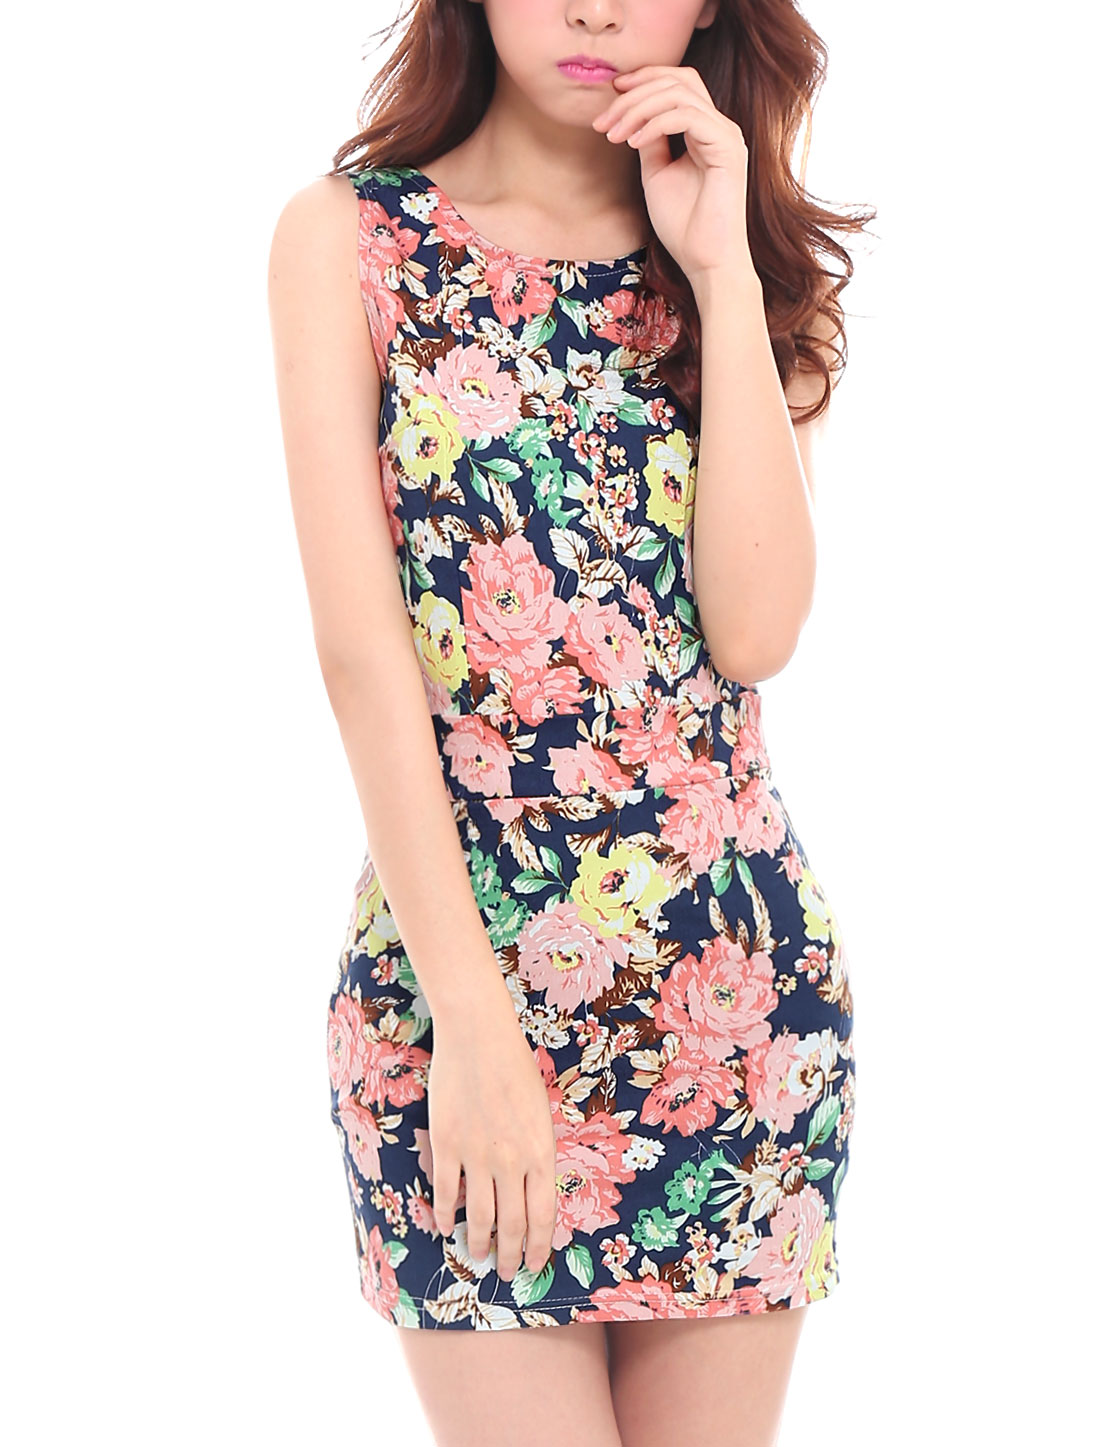 Lady Side Zipper Cut Out Back Floral Print Bodycon Short Dress Navy Blue XS